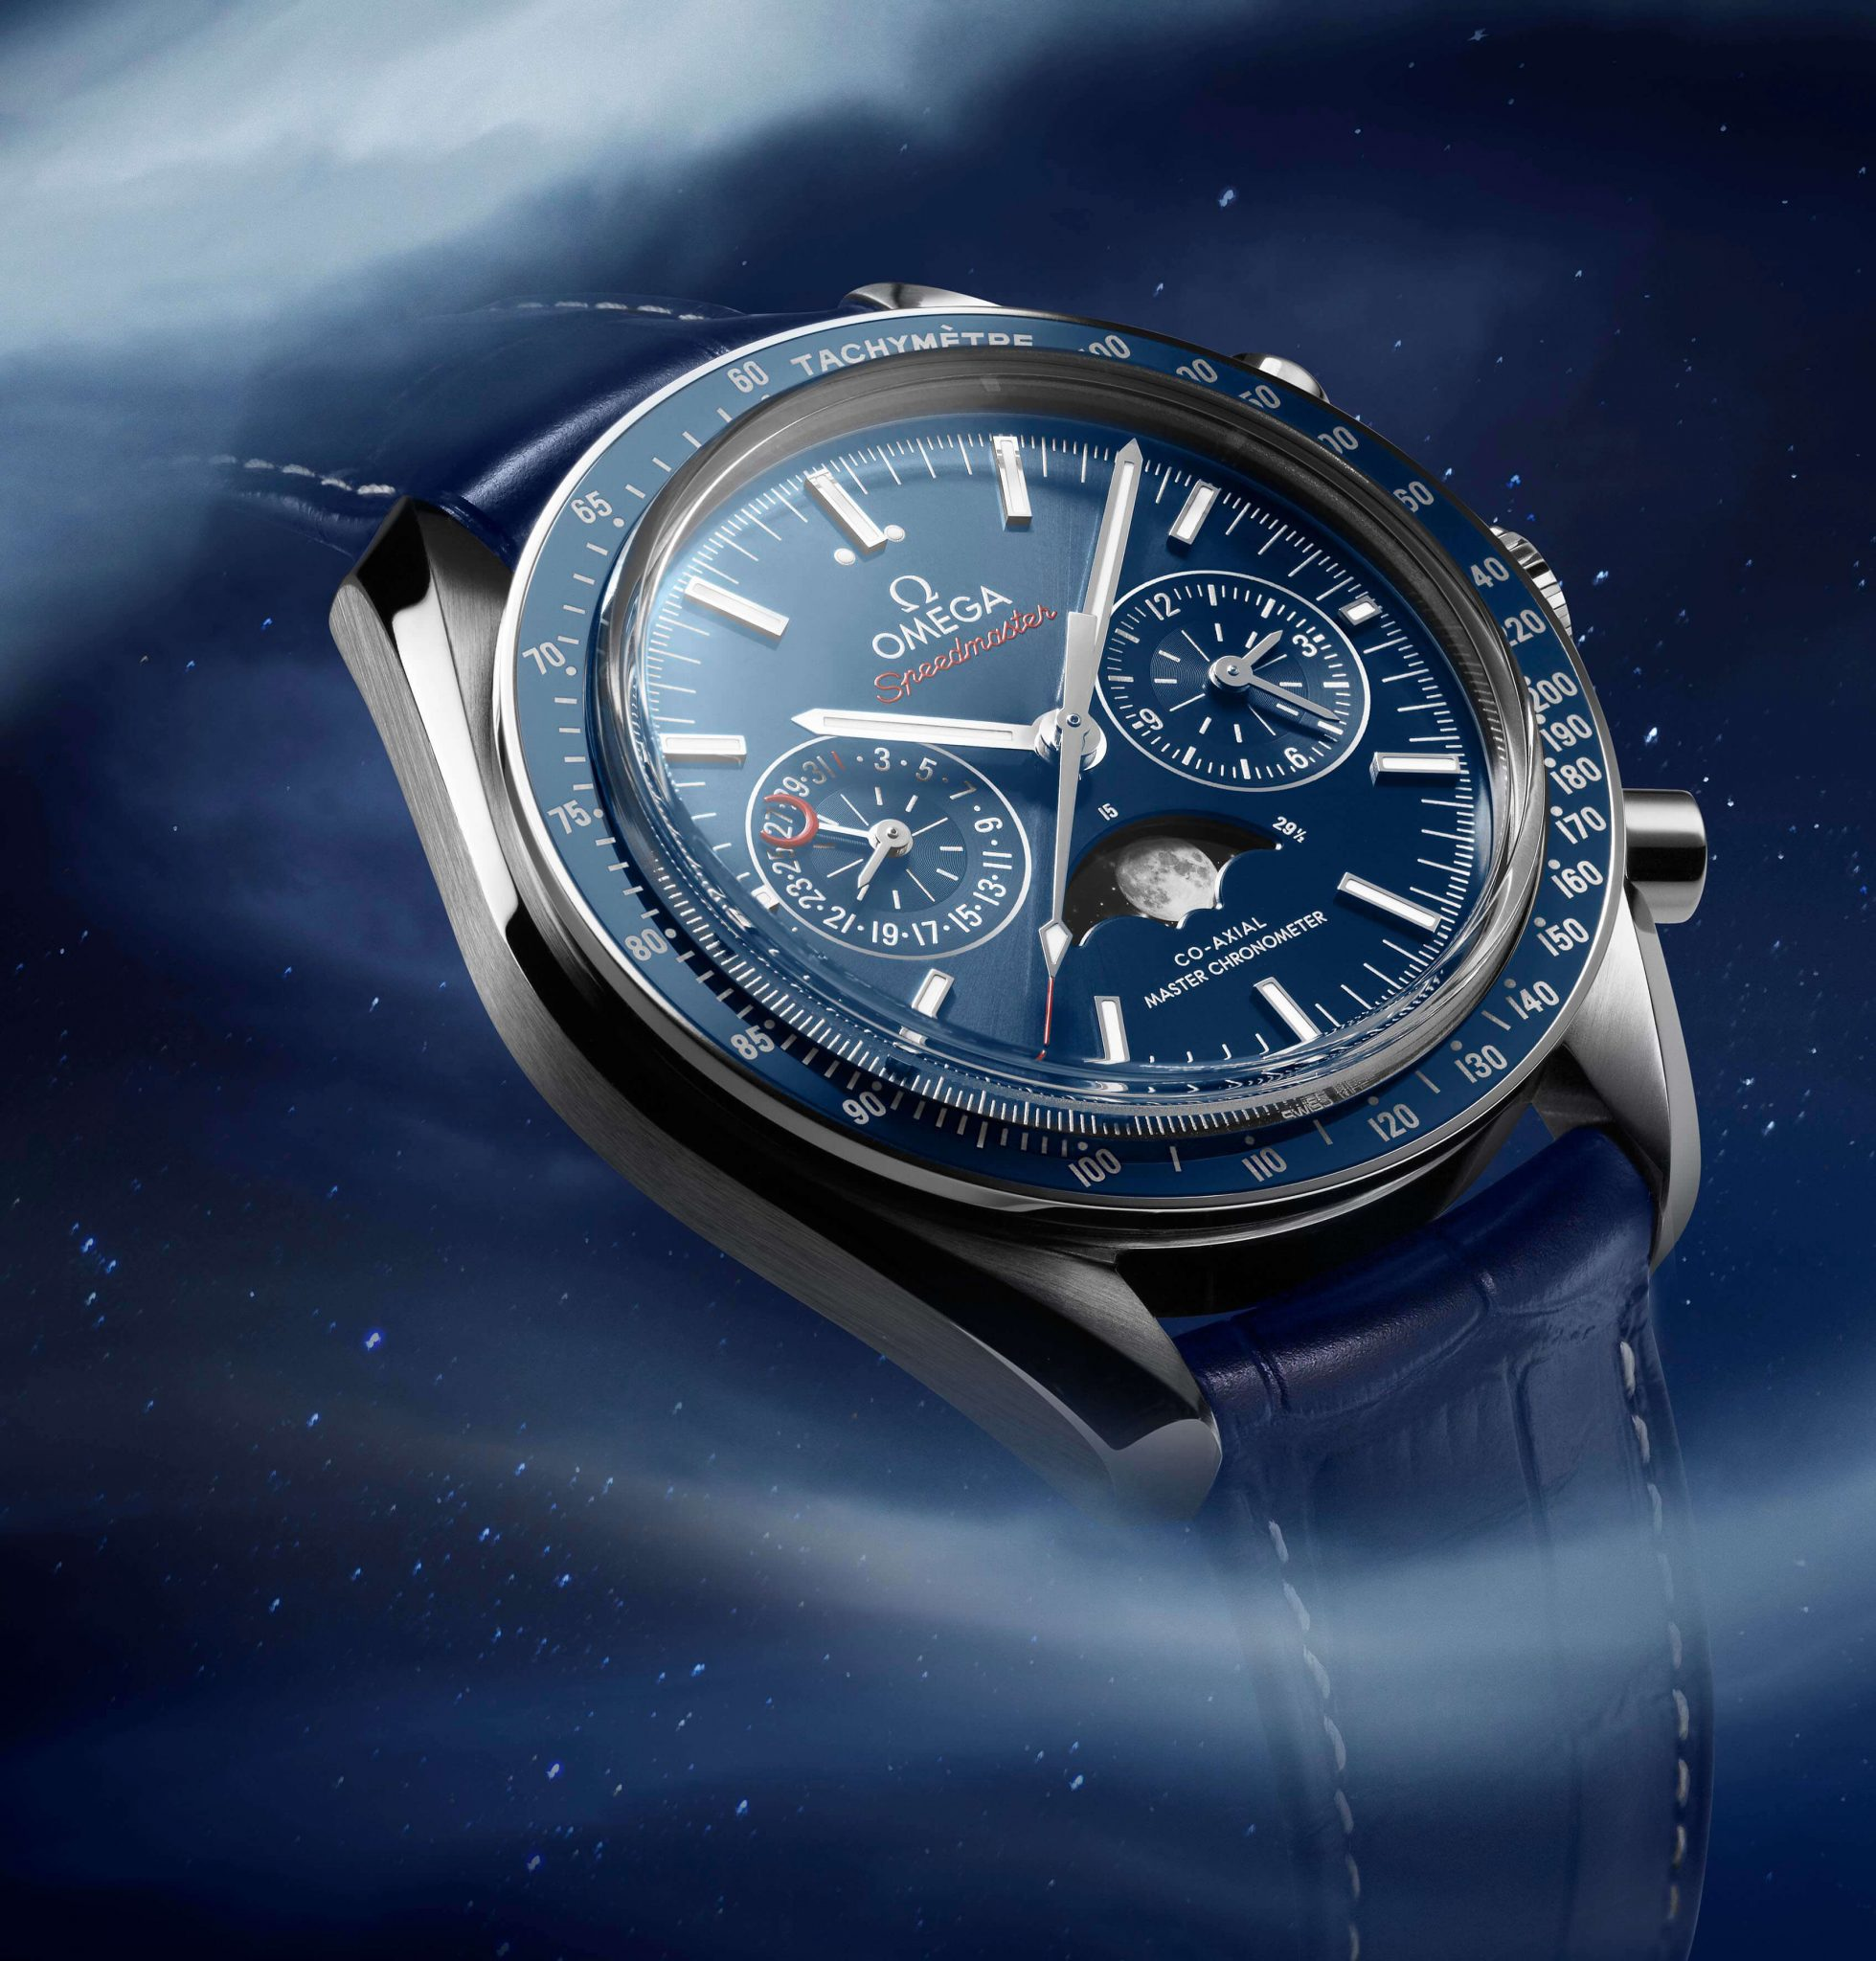 Speedmaster moonphase_304.33.44.52.03.001_with background_3_4